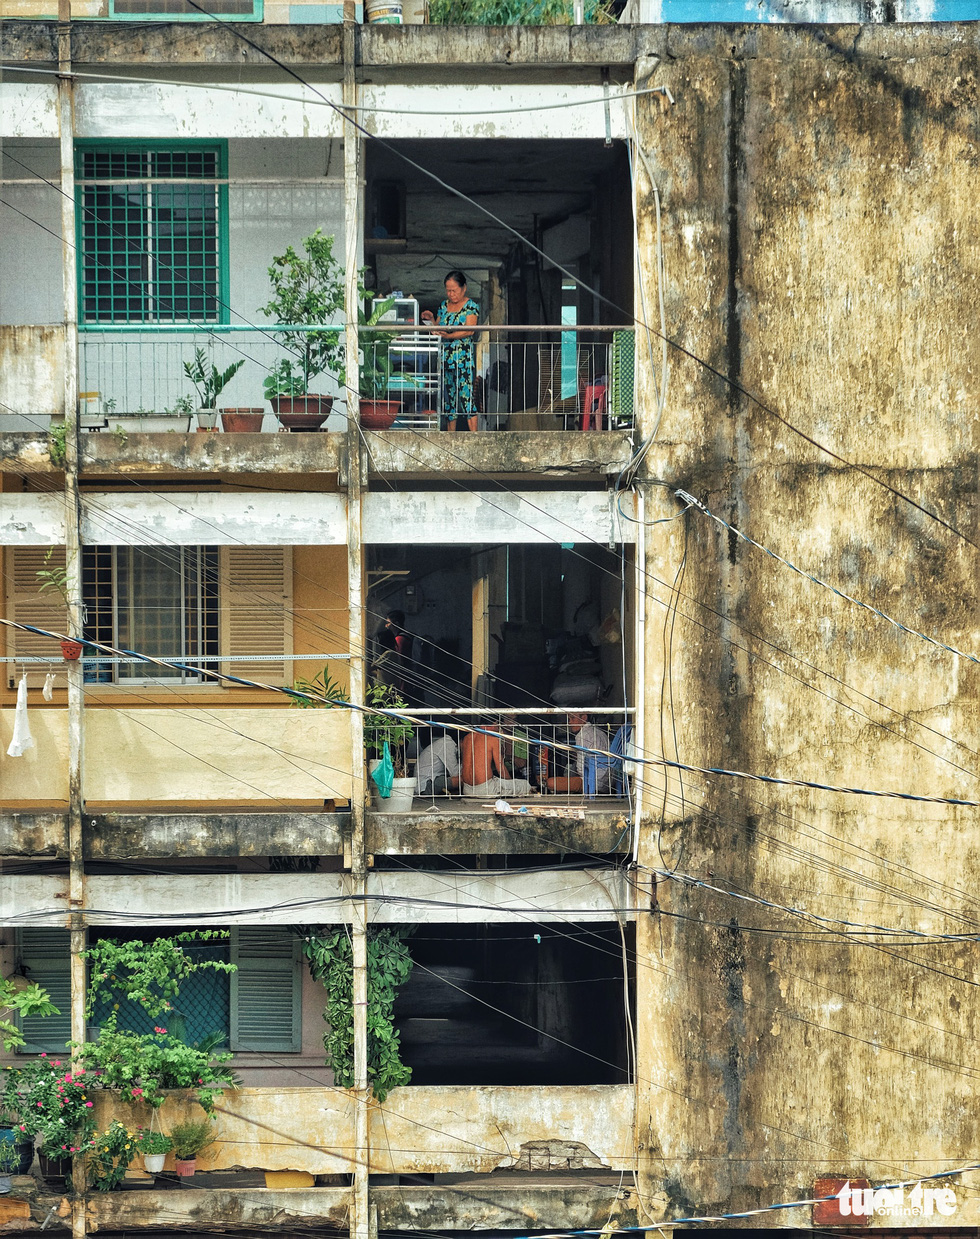 Images of a dilapidated apartments in Ho Chi Minh City